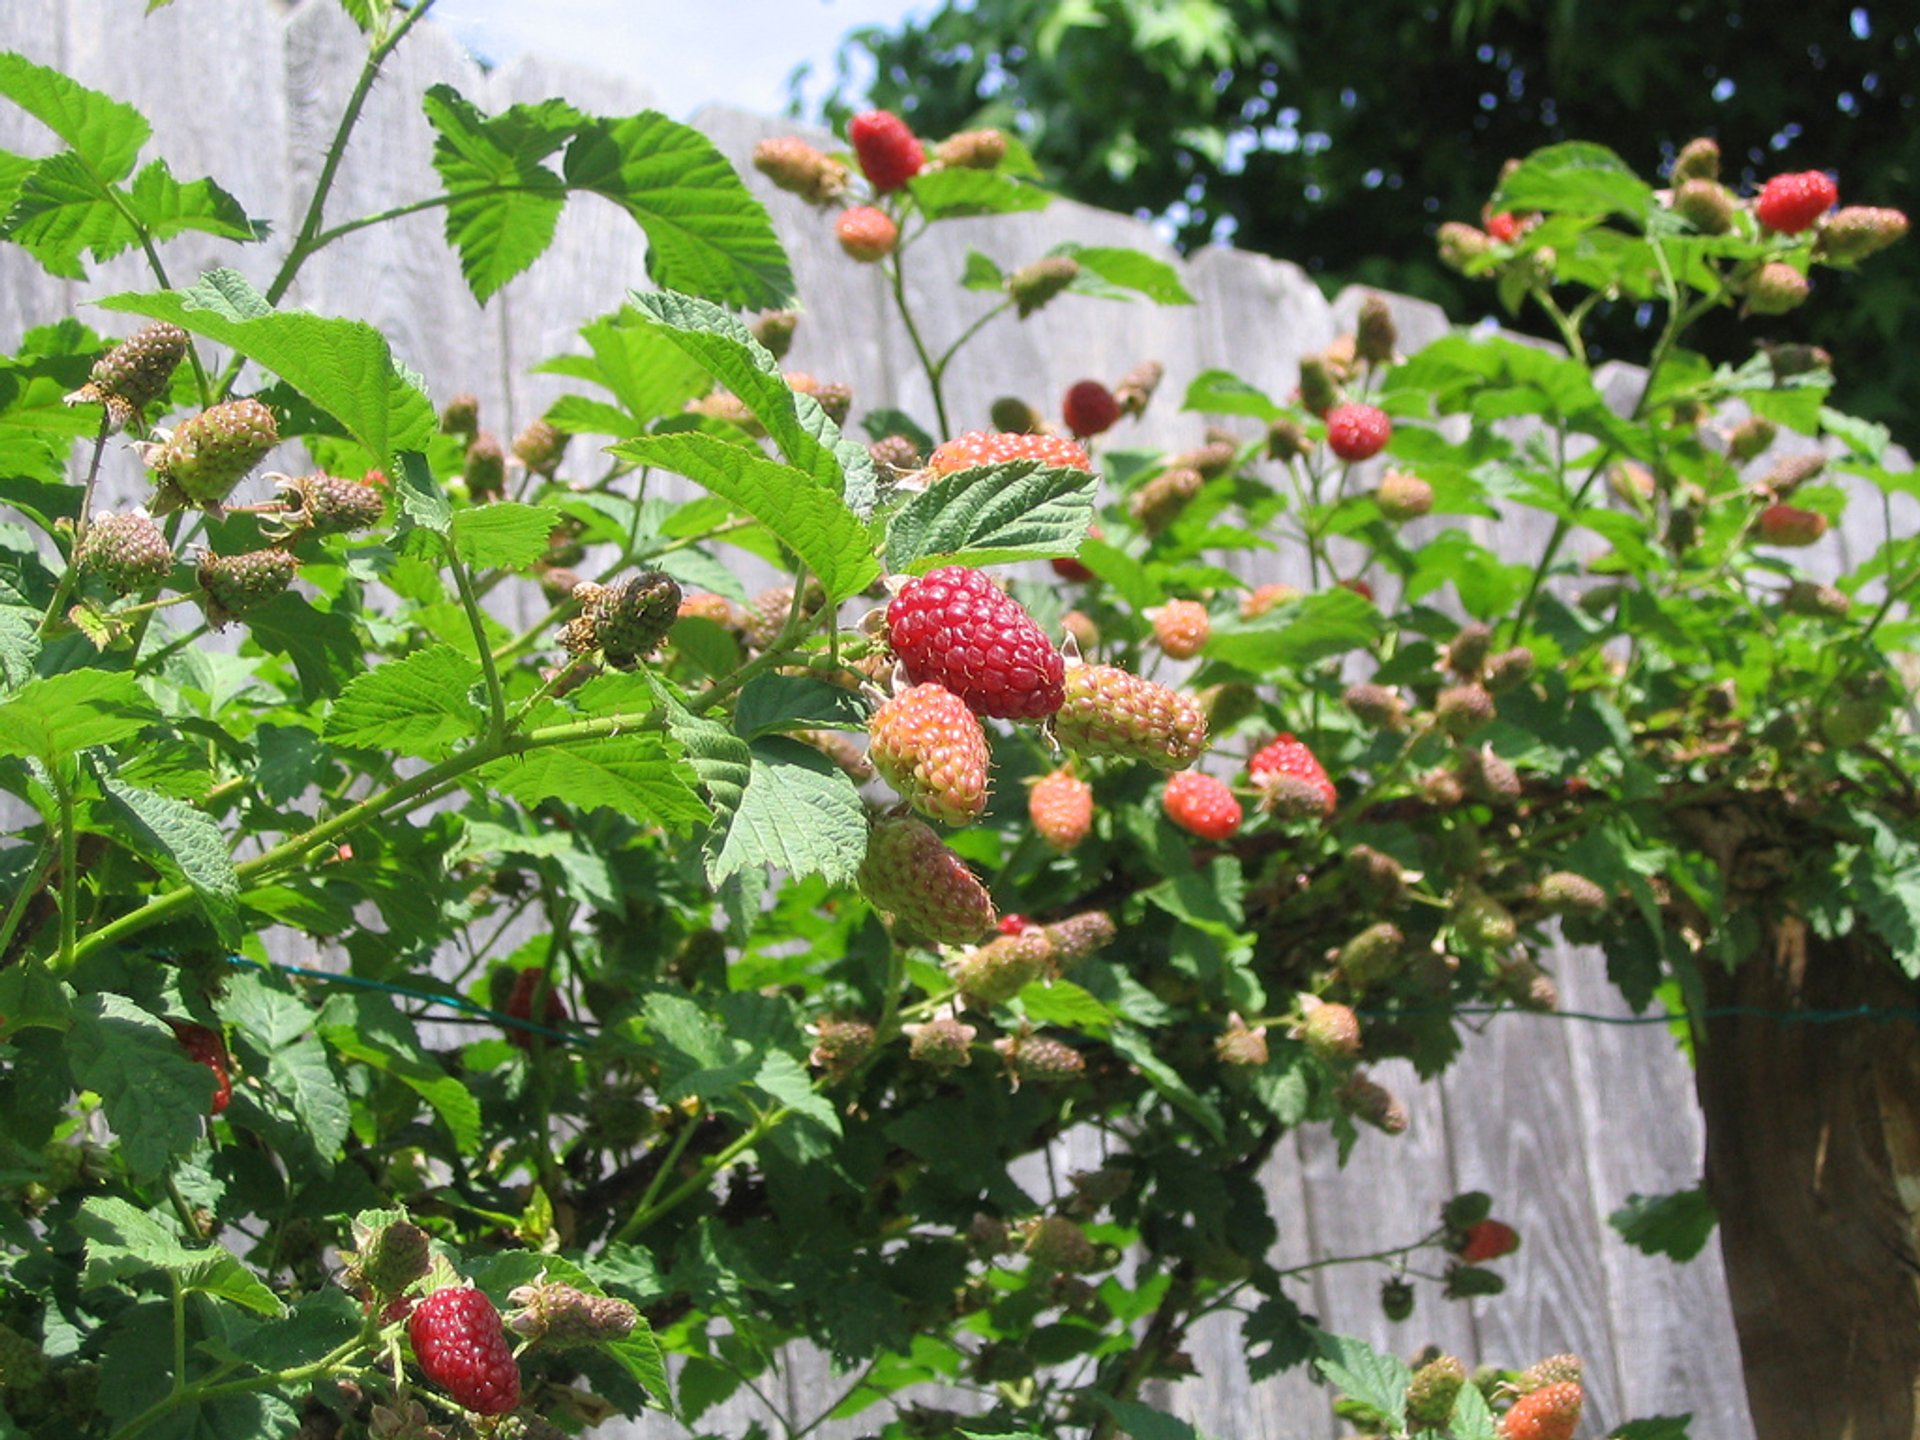 Loganberries in Ireland - Best Season 2019